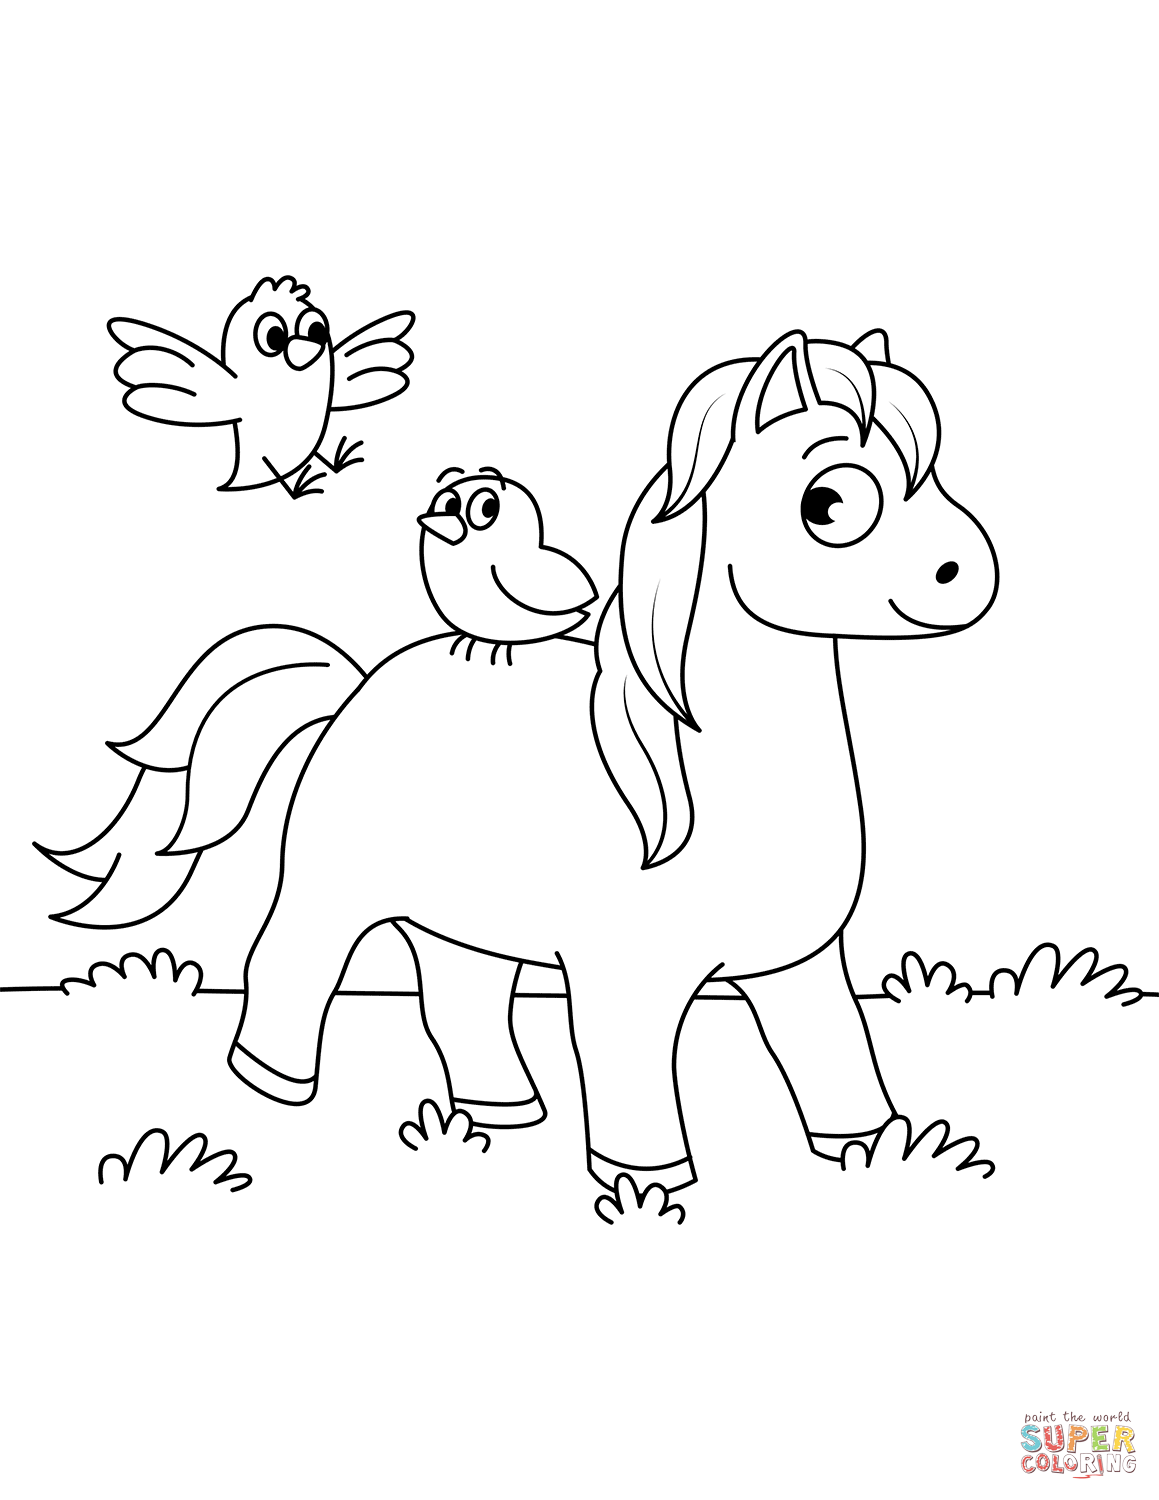 miniature horse coloring pages printable realistic horse coloring pages bubakidscom miniature coloring pages horse